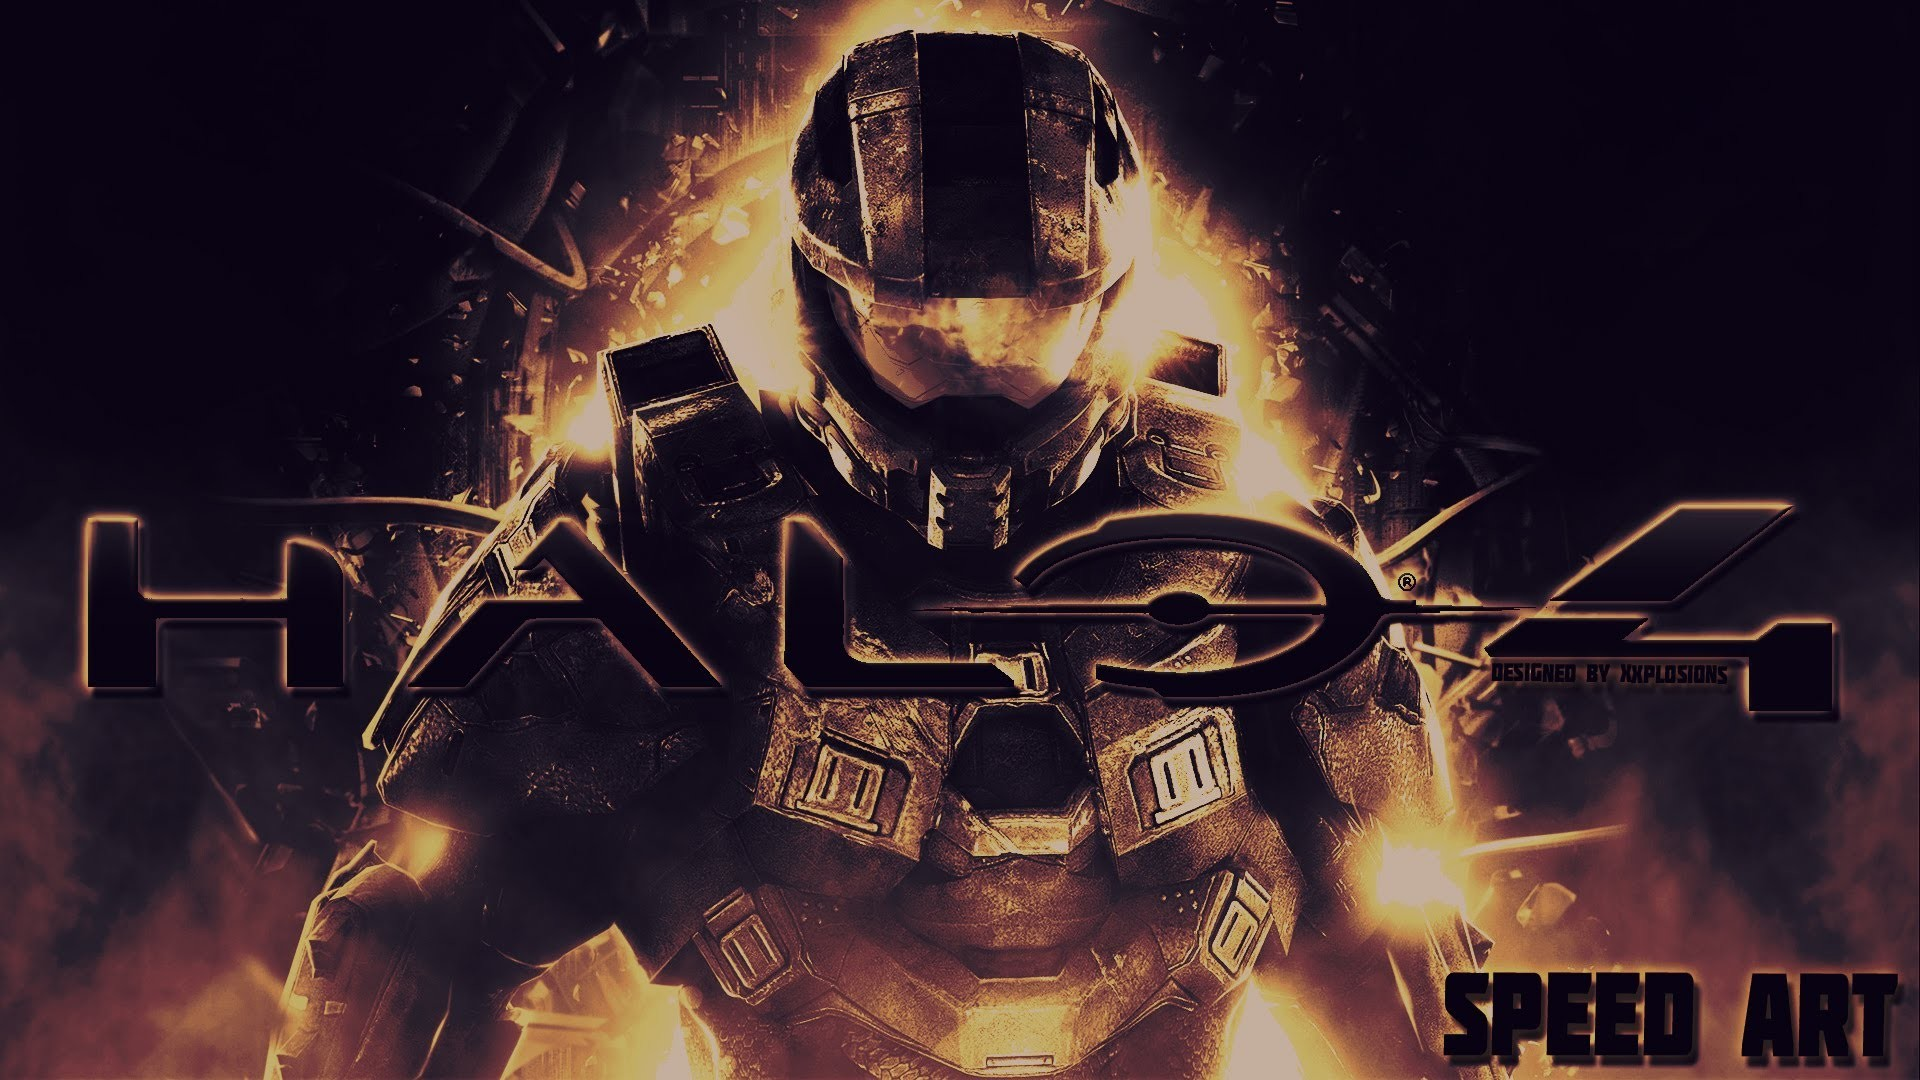 Halo 4 wallpaper 1080p 75 images - Halo 4 pictures ...